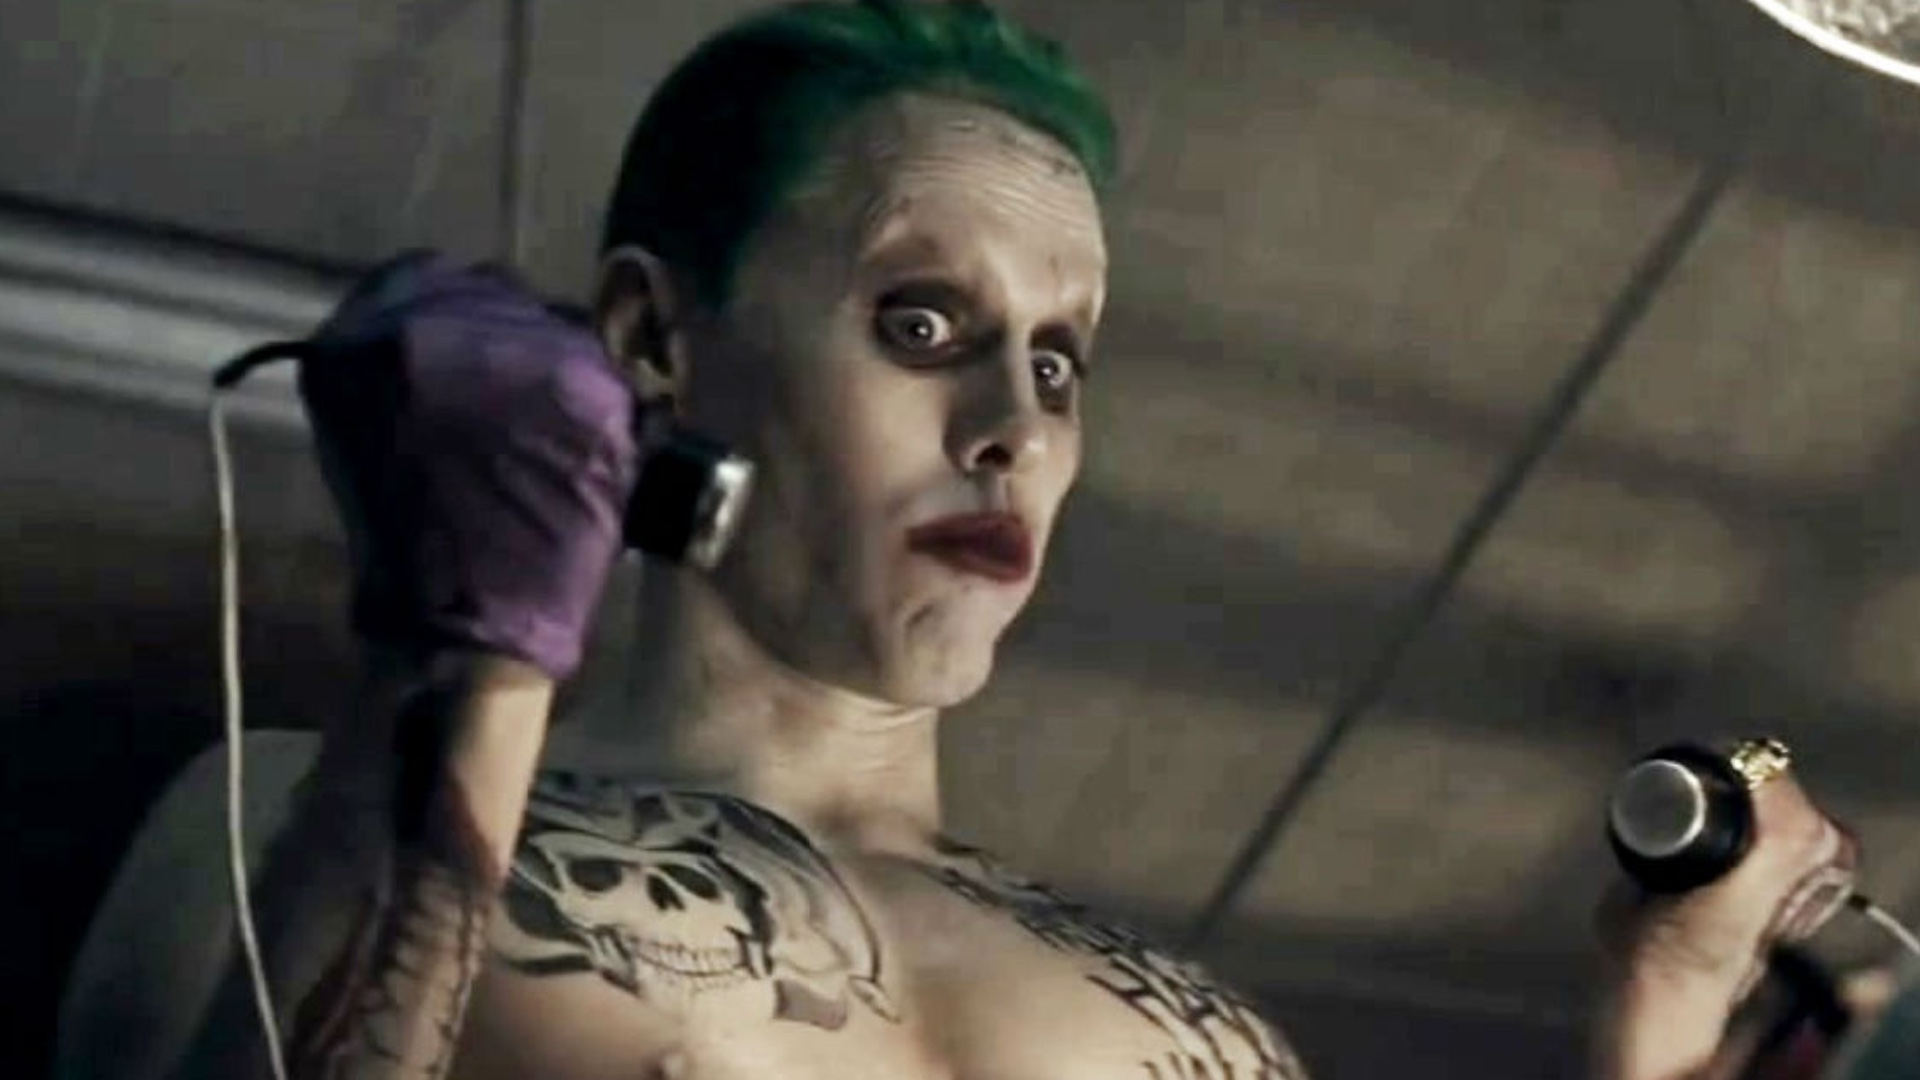 Suicide Squad The Joker S Tattoos And Teeth Tell A Story That Are